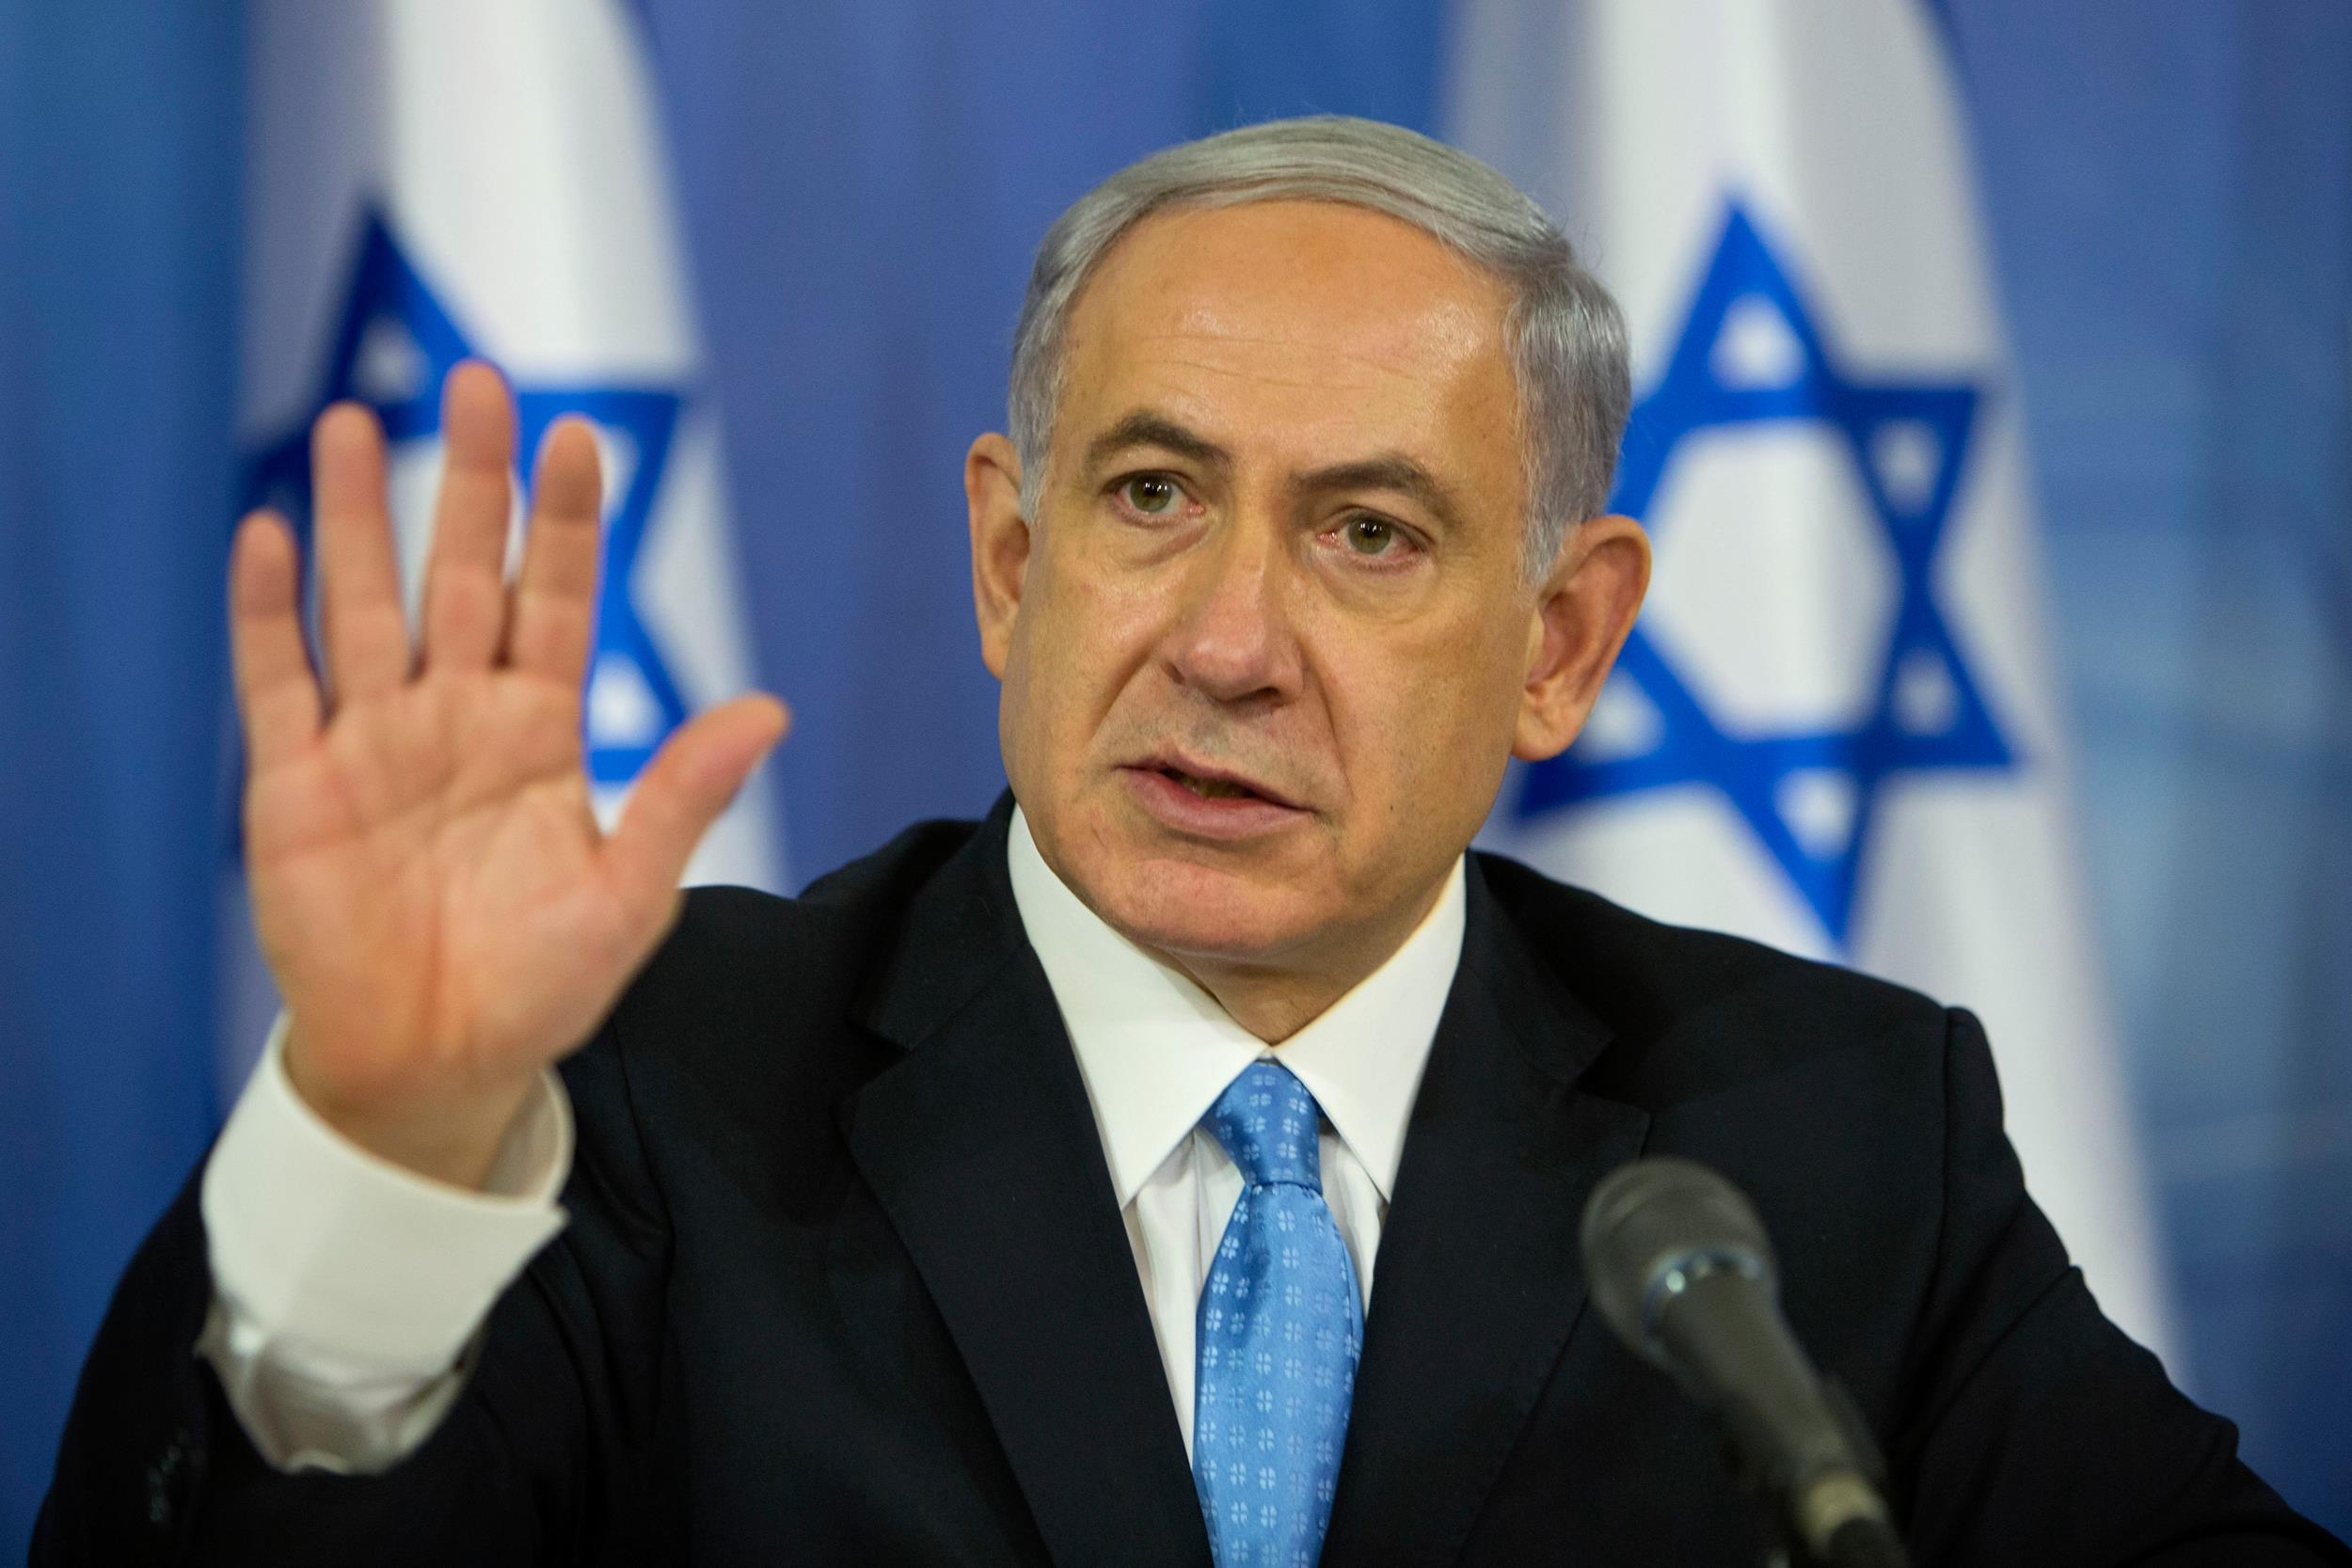 Netanyahu calls for UN Palestinian refugee agency to be dismantled